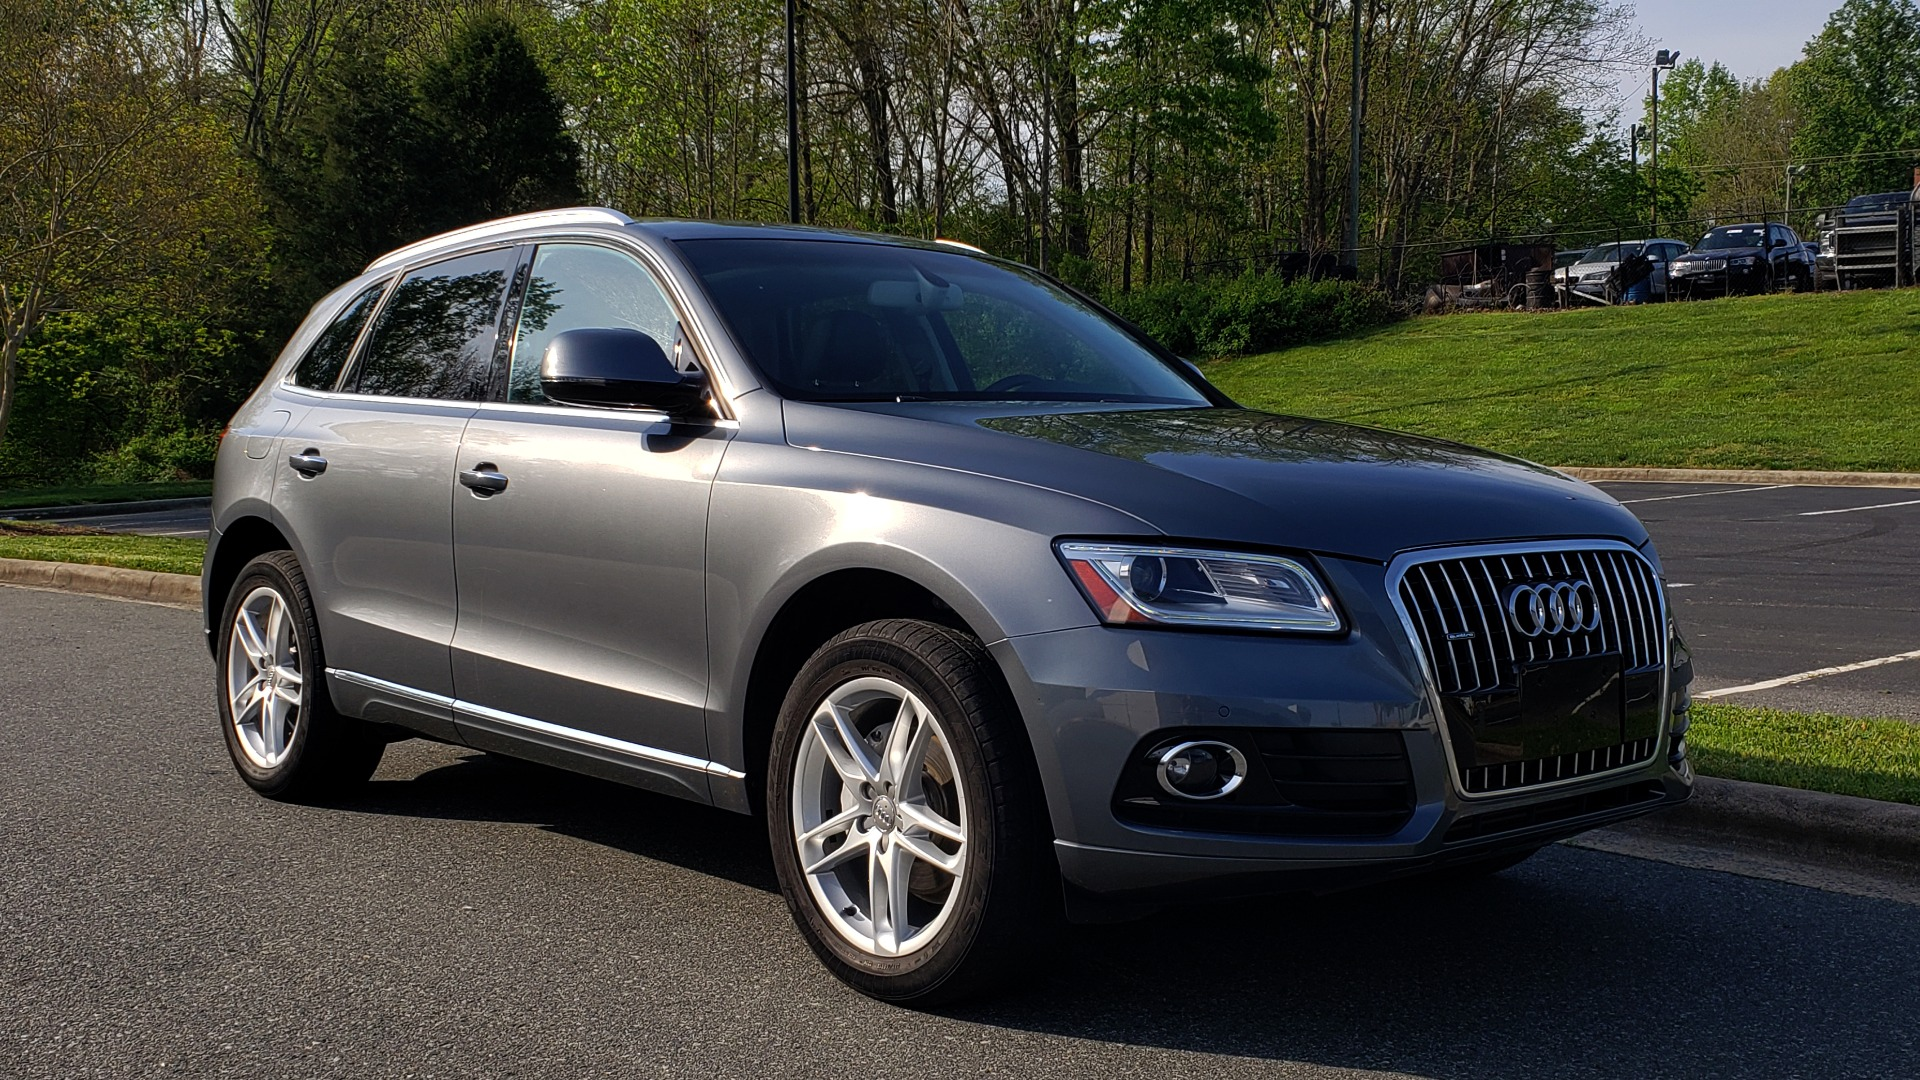 Used 2015 Audi Q5 PREMIUM PLUS / TECH PKG / NAV / PANO-ROOF / REARVIEW for sale Sold at Formula Imports in Charlotte NC 28227 4